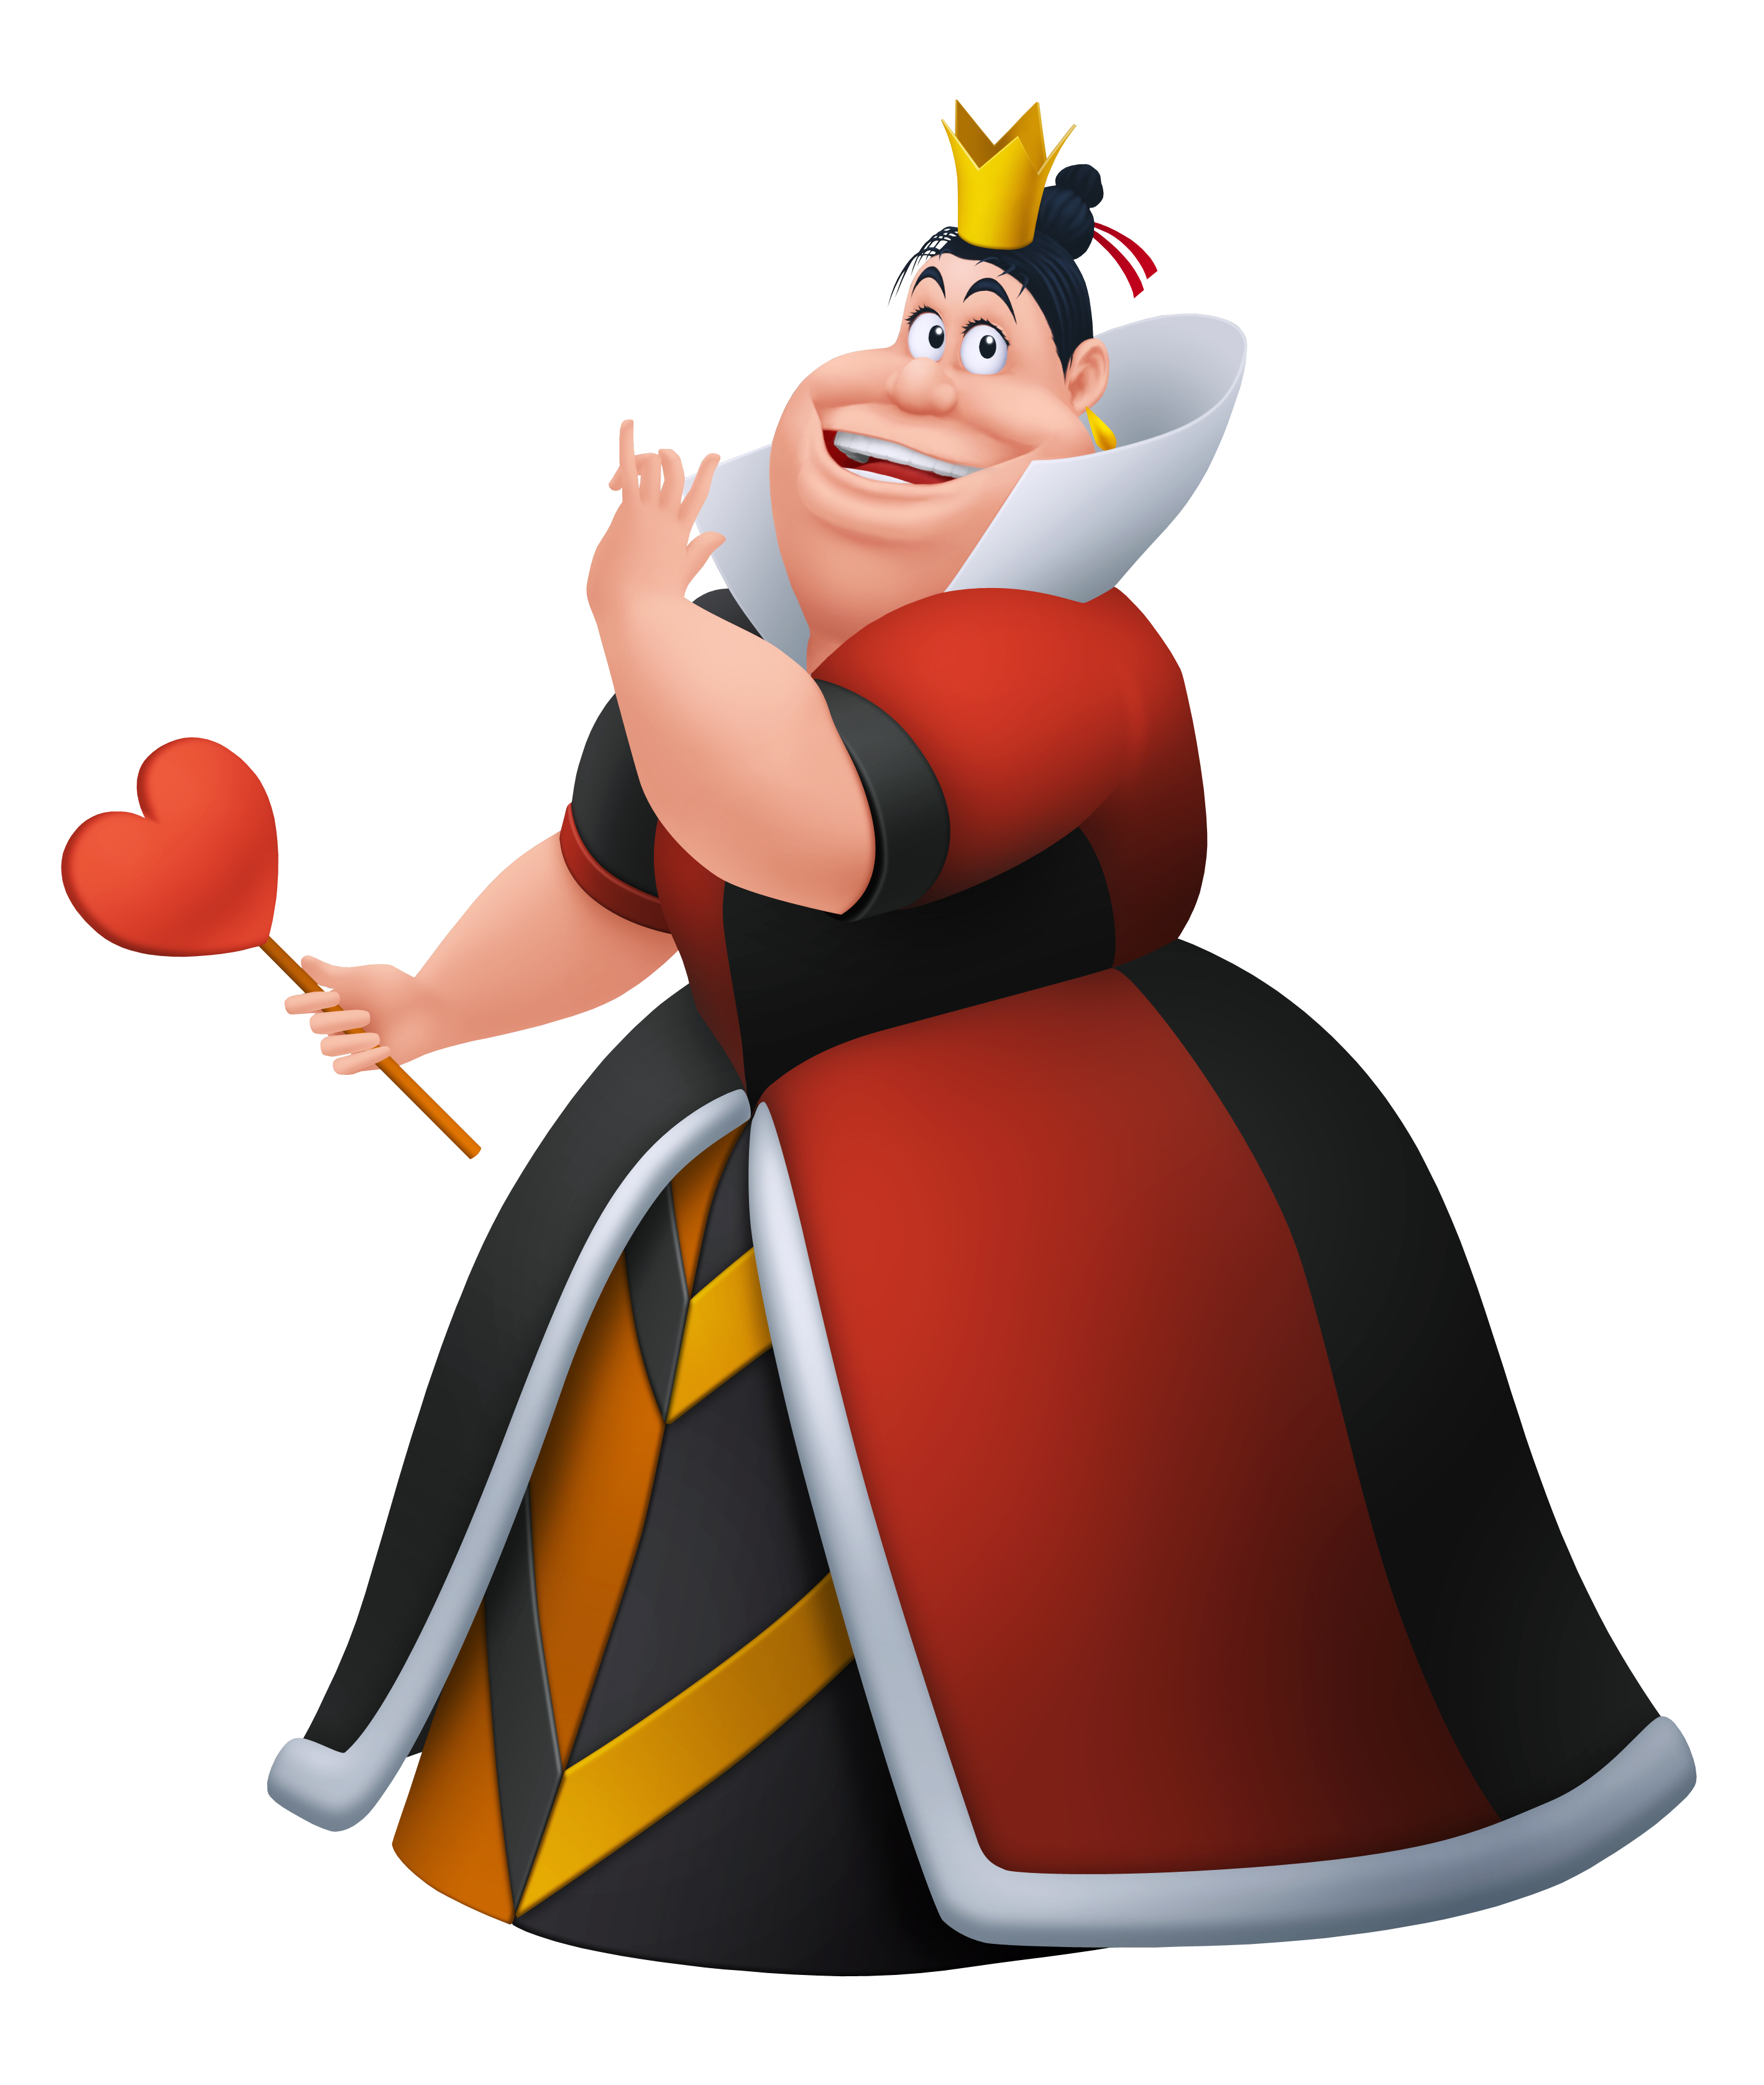 Queen of kingdom insider. Hearts clipart character